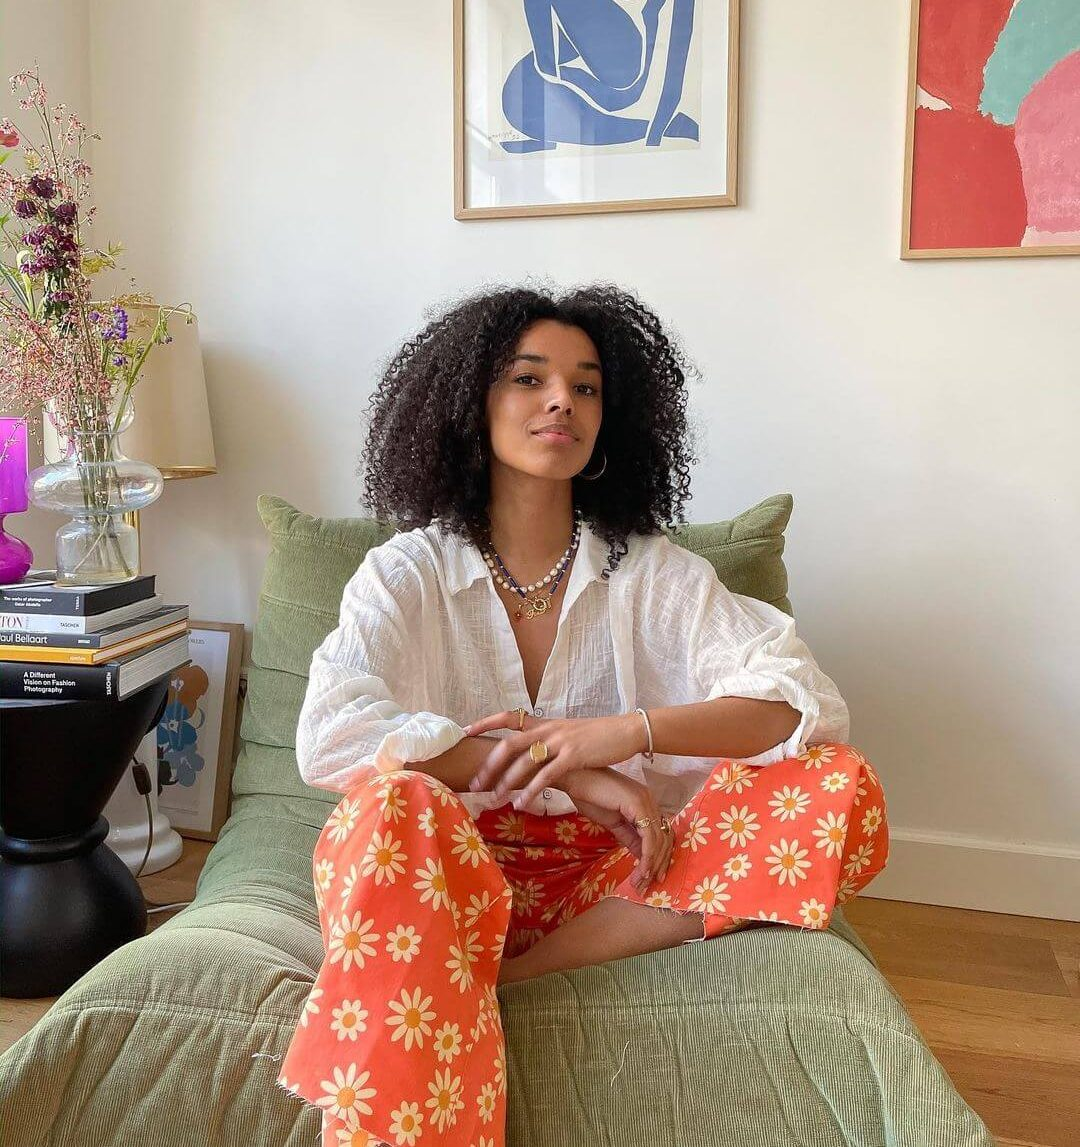 Influencer fiahamelijnck in red floral jeans and a white blouse sitting in her living room with framed pictures in the background